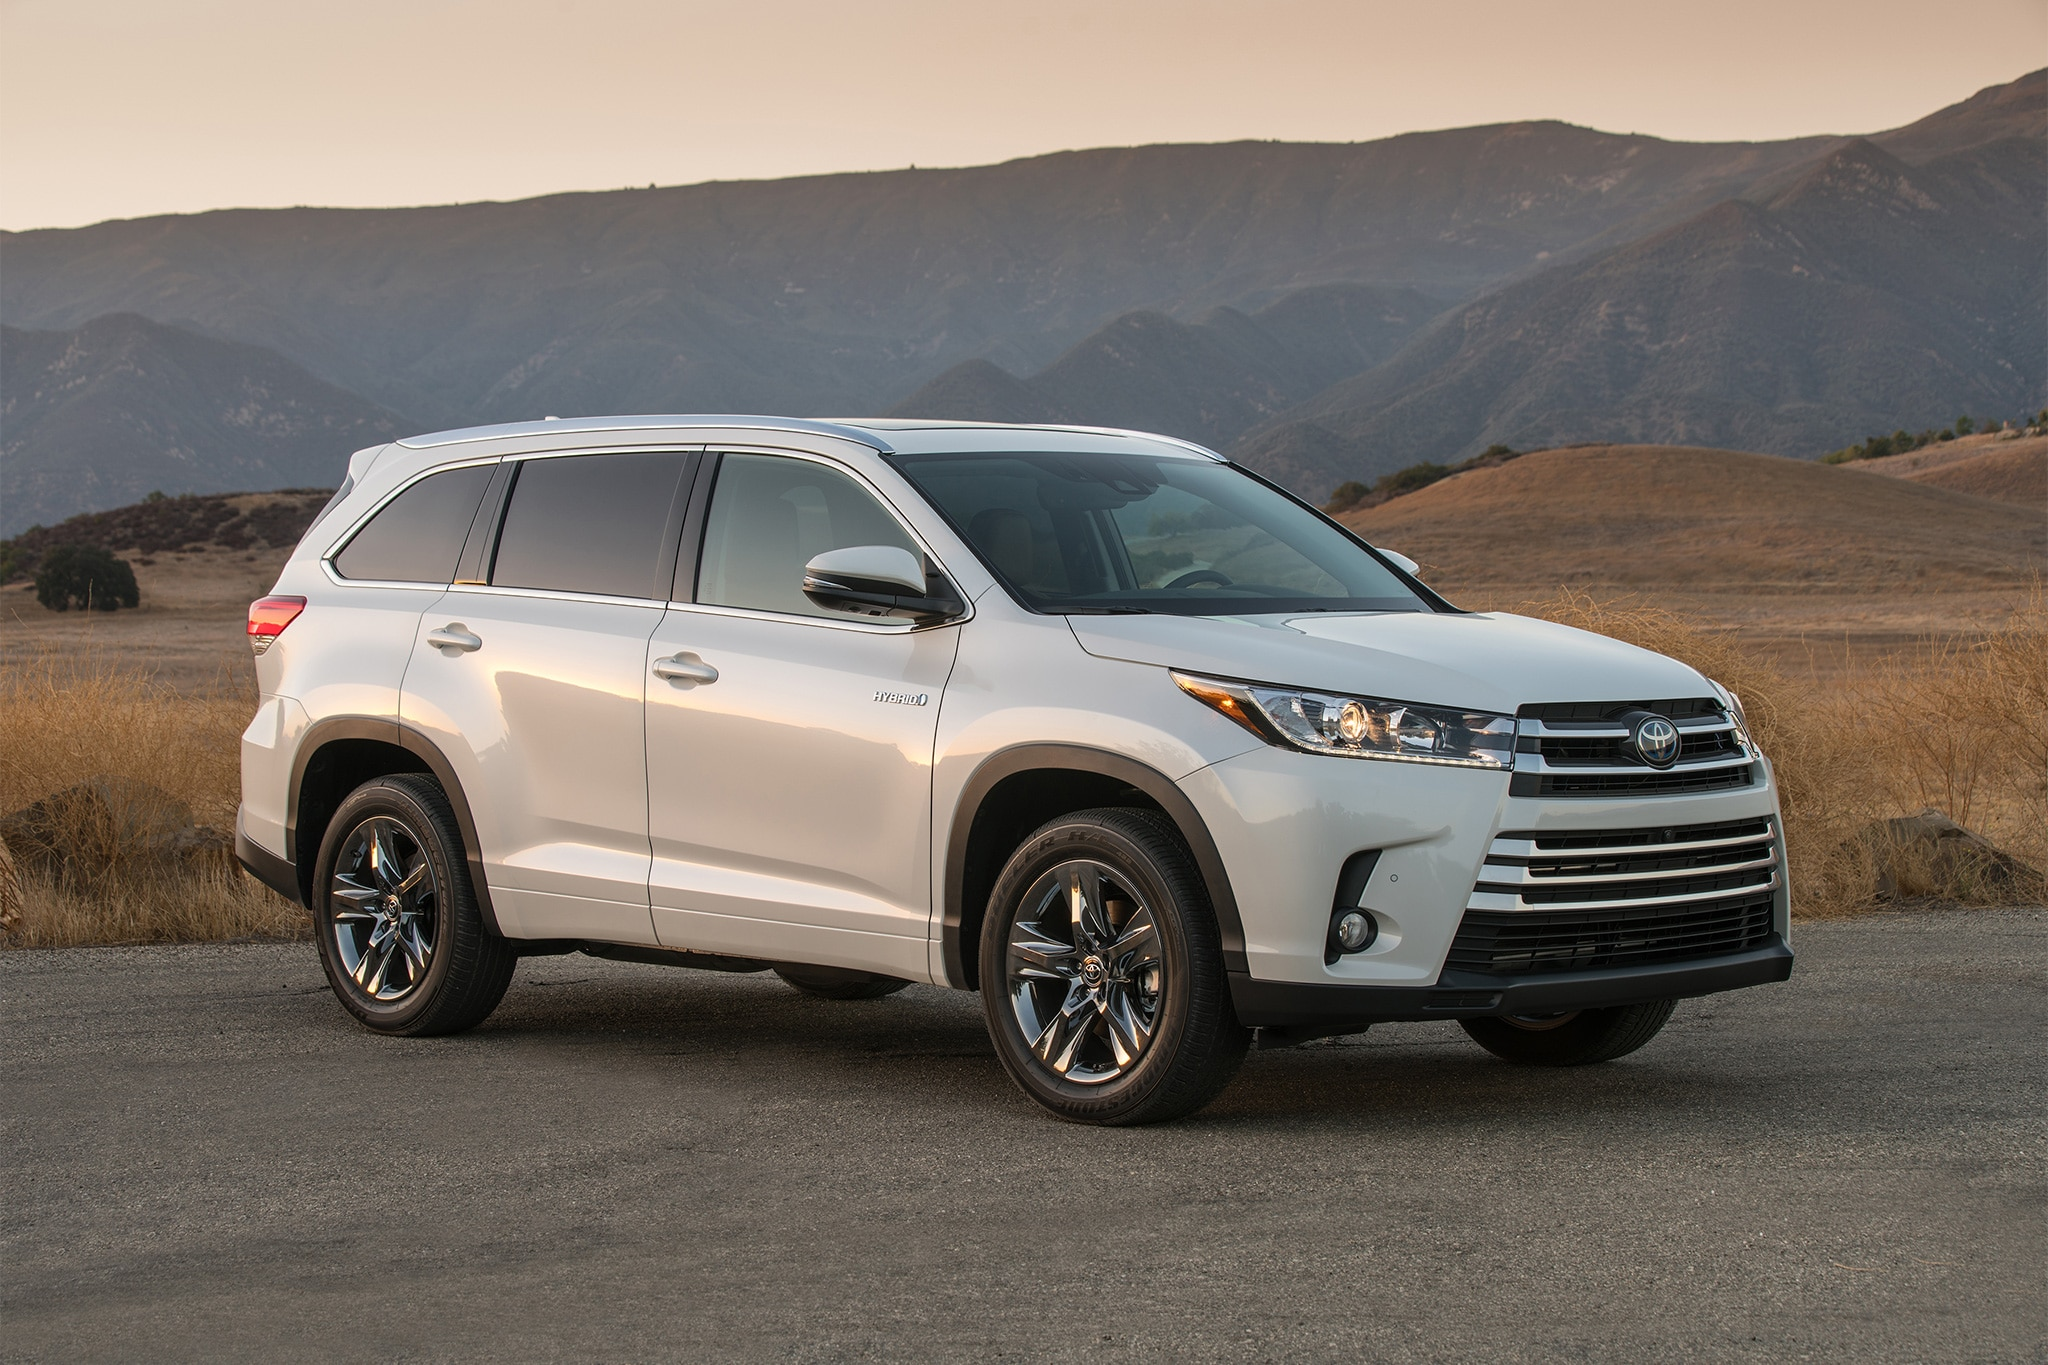 2017 Toyota Highlander Receives Updates for the High Road | Automobile ...